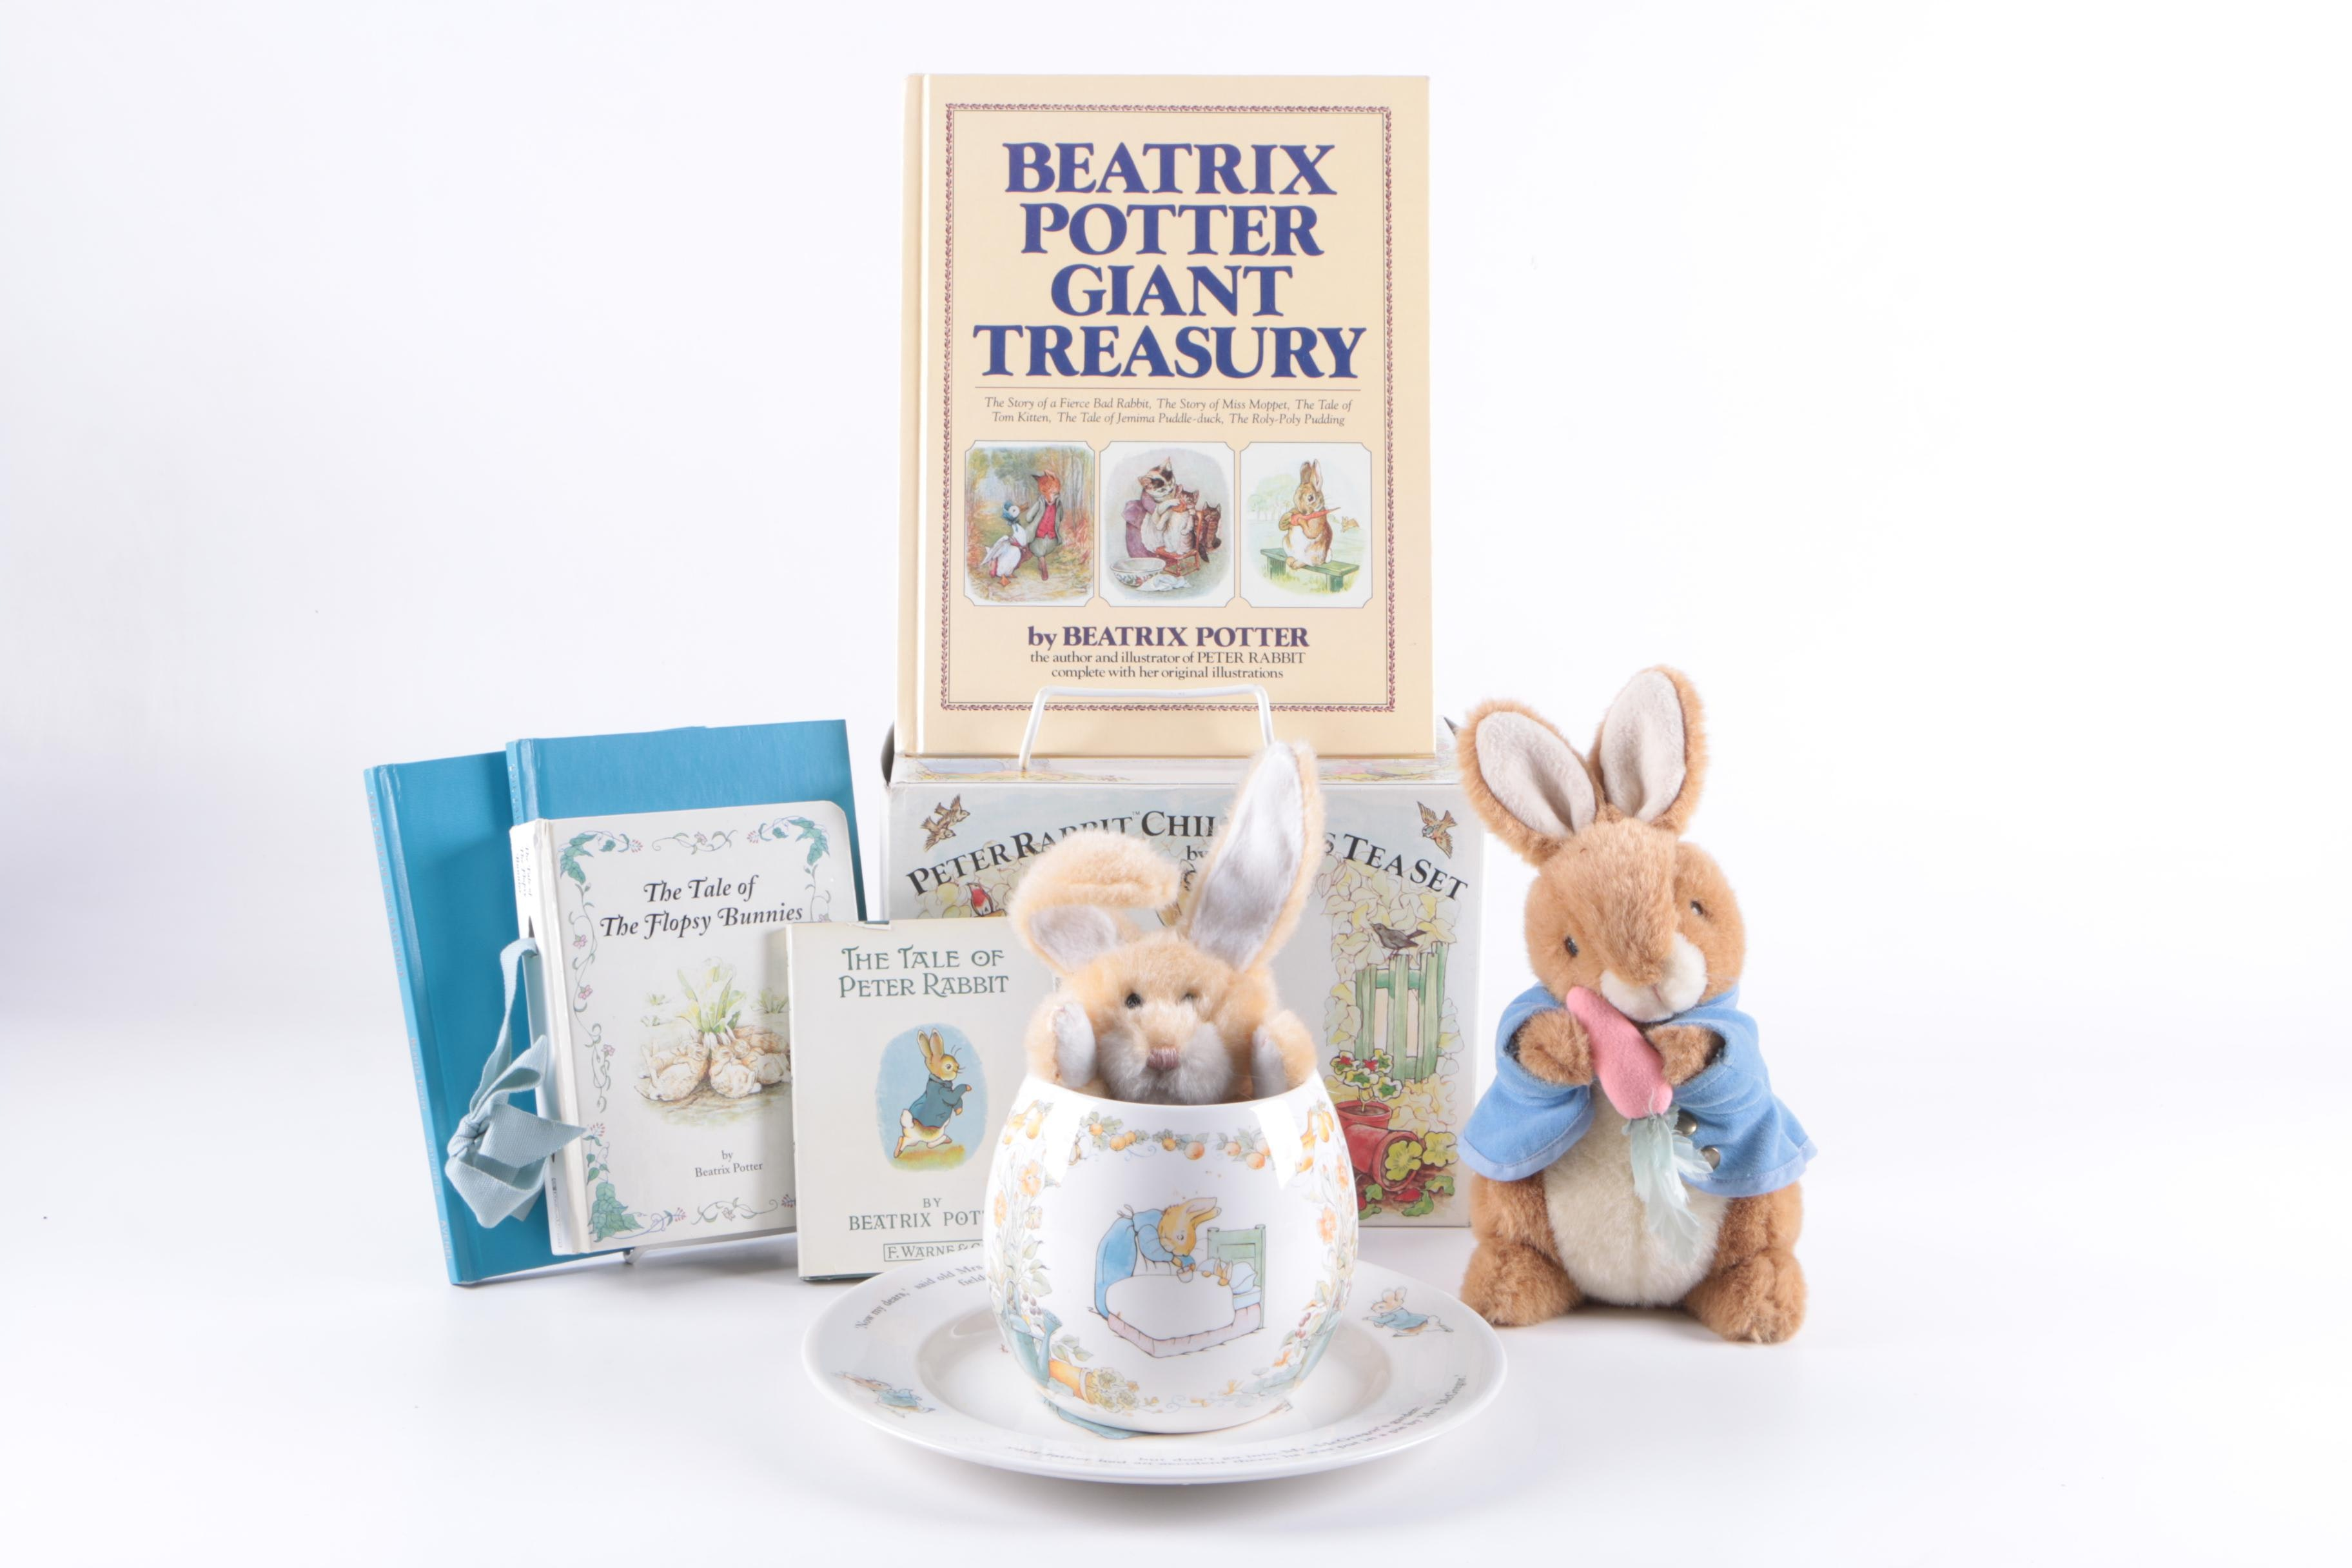 Beatrix Potter Books, Stuffed Bunnies and Wedgwood Children's Tableware